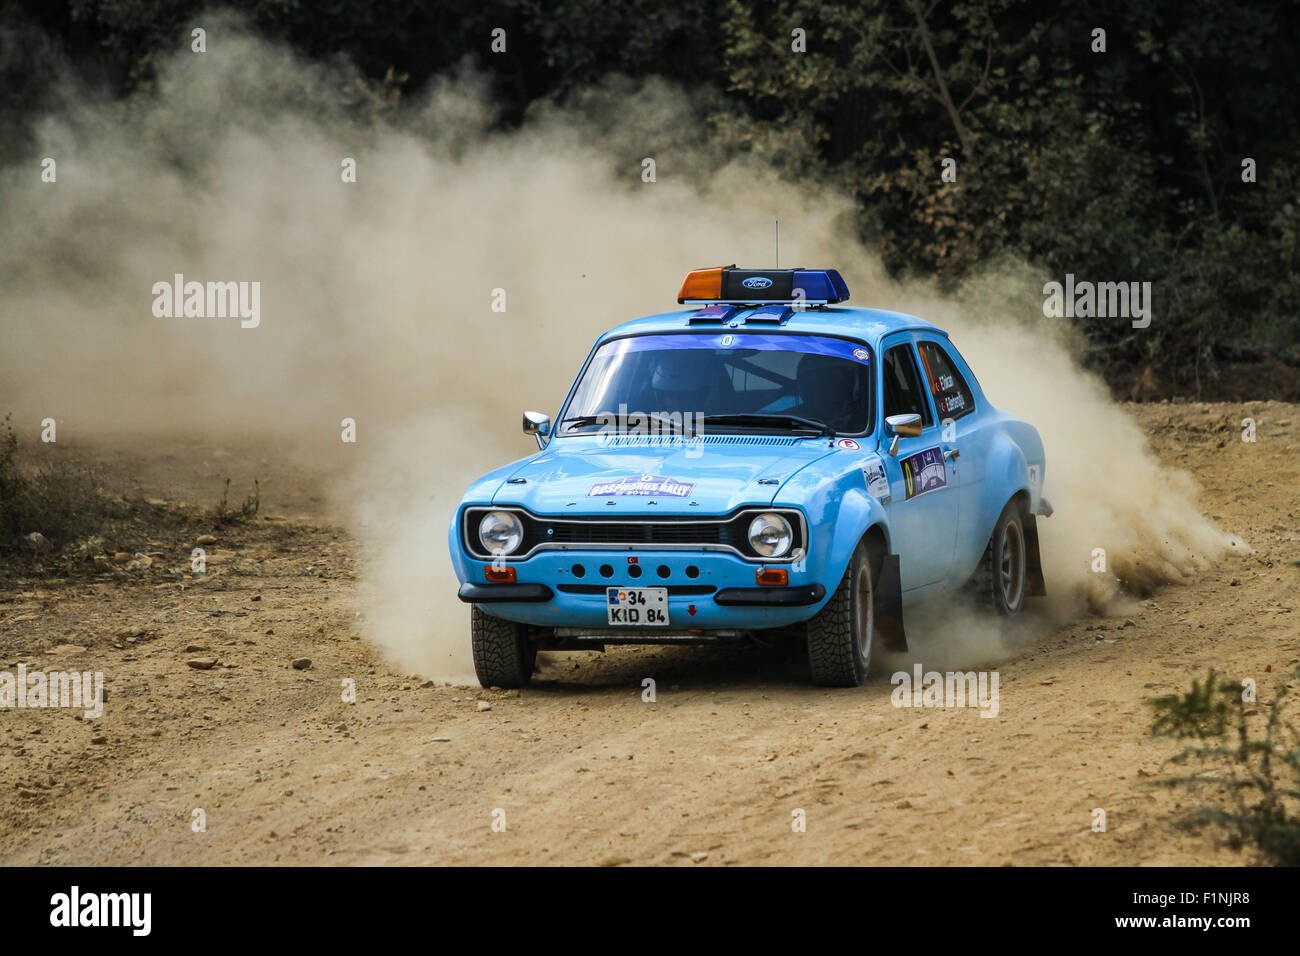 ISTANBUL, TURKEY - JULY 25, 2015: Ercan Tokcan drives safety car of Bosphorus Rally 2015, Mudarli stage - Stock Image